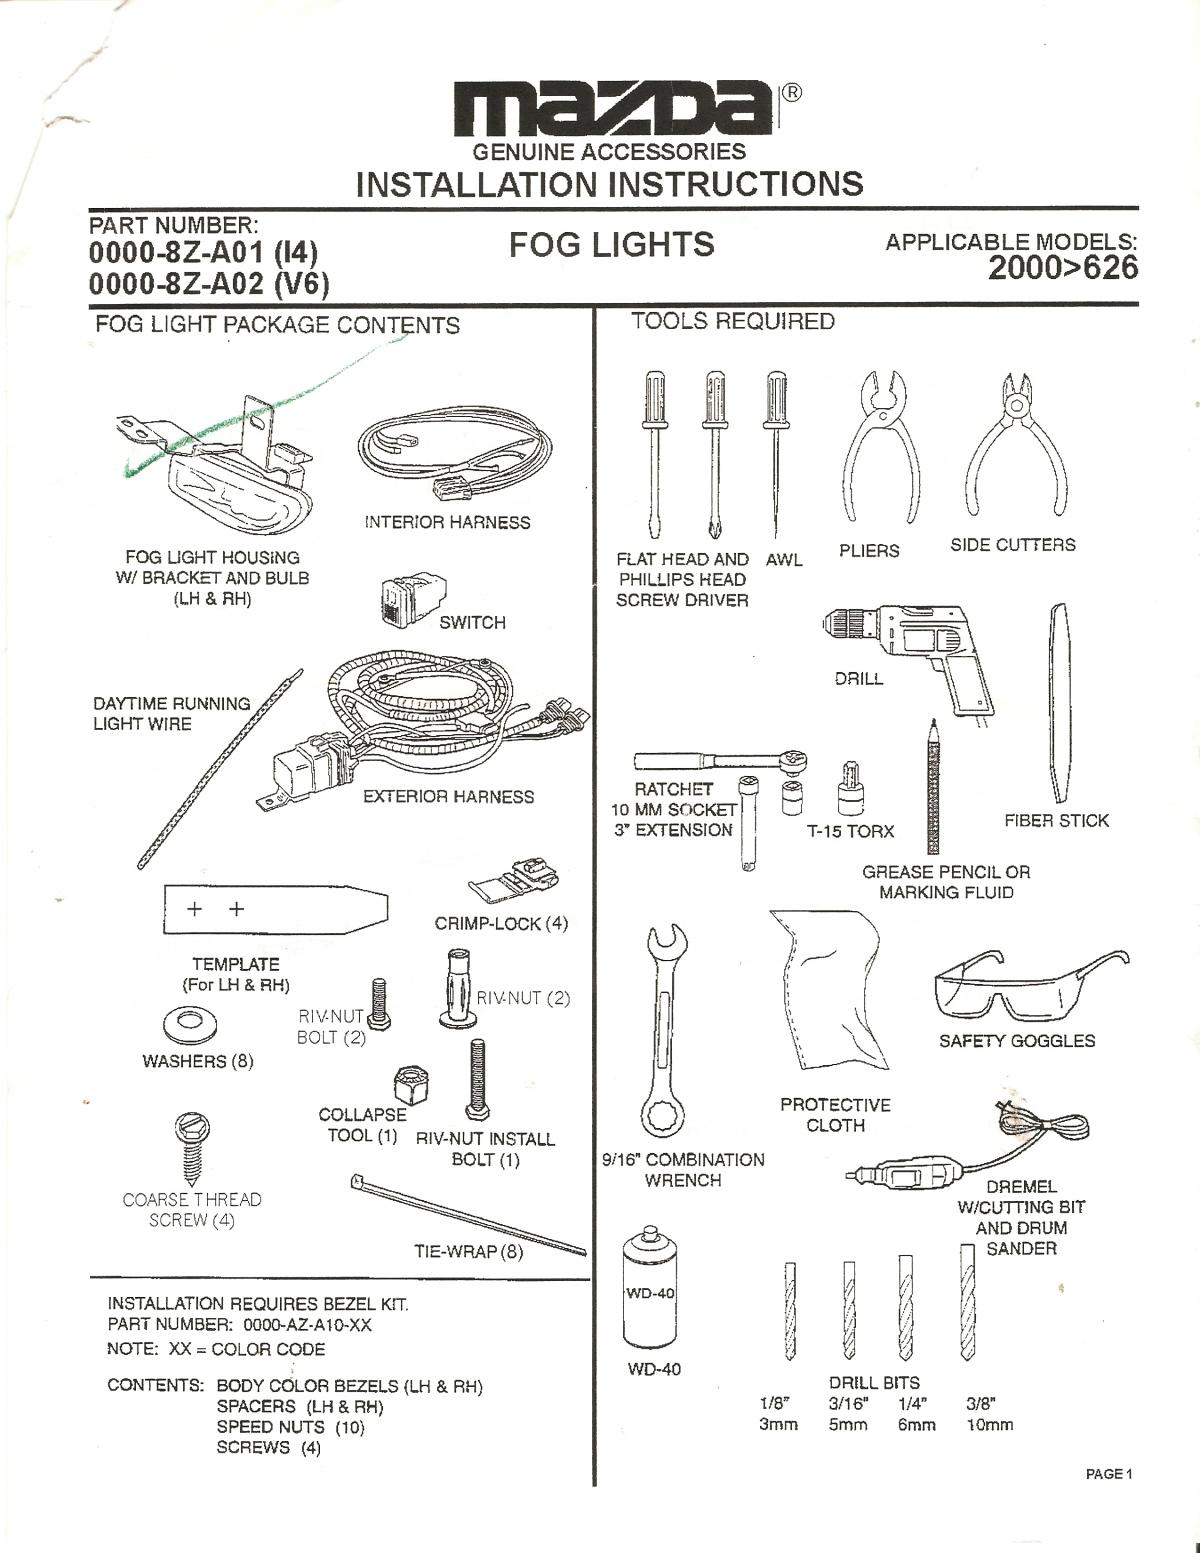 how to  install fog lights on 00-02 626 - tutorials  u0026 how to guides